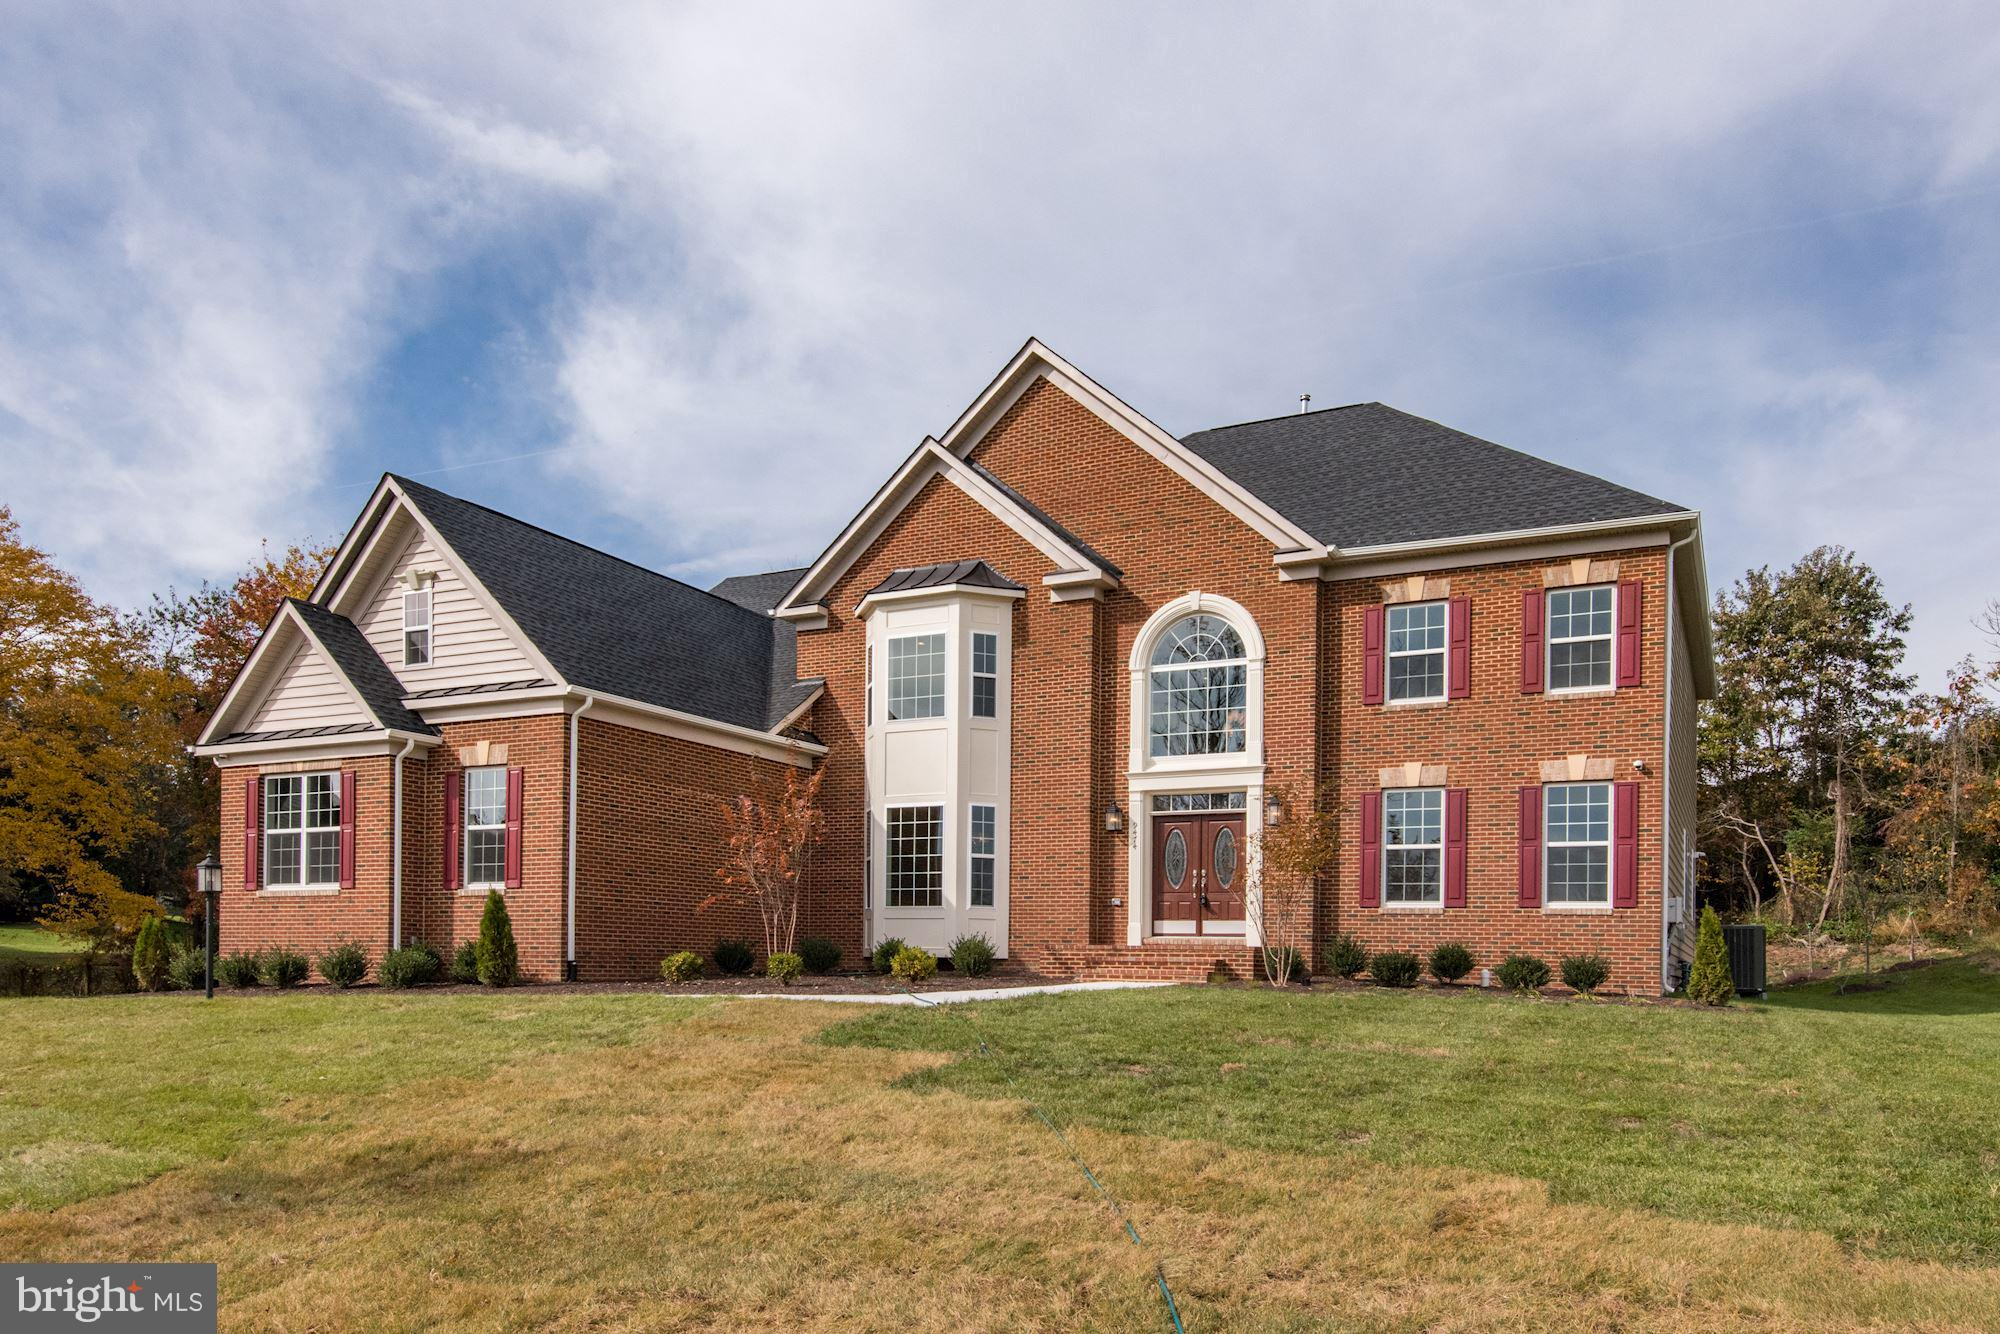 IMMEDIATE DELIVERY, NEW CONSTRUCTION: 5 BR, 4.5 BA: Brick Front, 3 Car Side Load Garage, Double Spiral Stairs, First Floor Bedroom w/Full Bath, Morning Room, Upgraded Kitchen Cabinets in Butler's Pantry, Farm Sink w/Upgraded Kitchen Counters, Snow Polish Marble in Foyer, Breakfast and Kitchen, Upgraded Electronics/Security Package, Wet Bar RI & Basement Bath RI, and SO MUCH MORE!